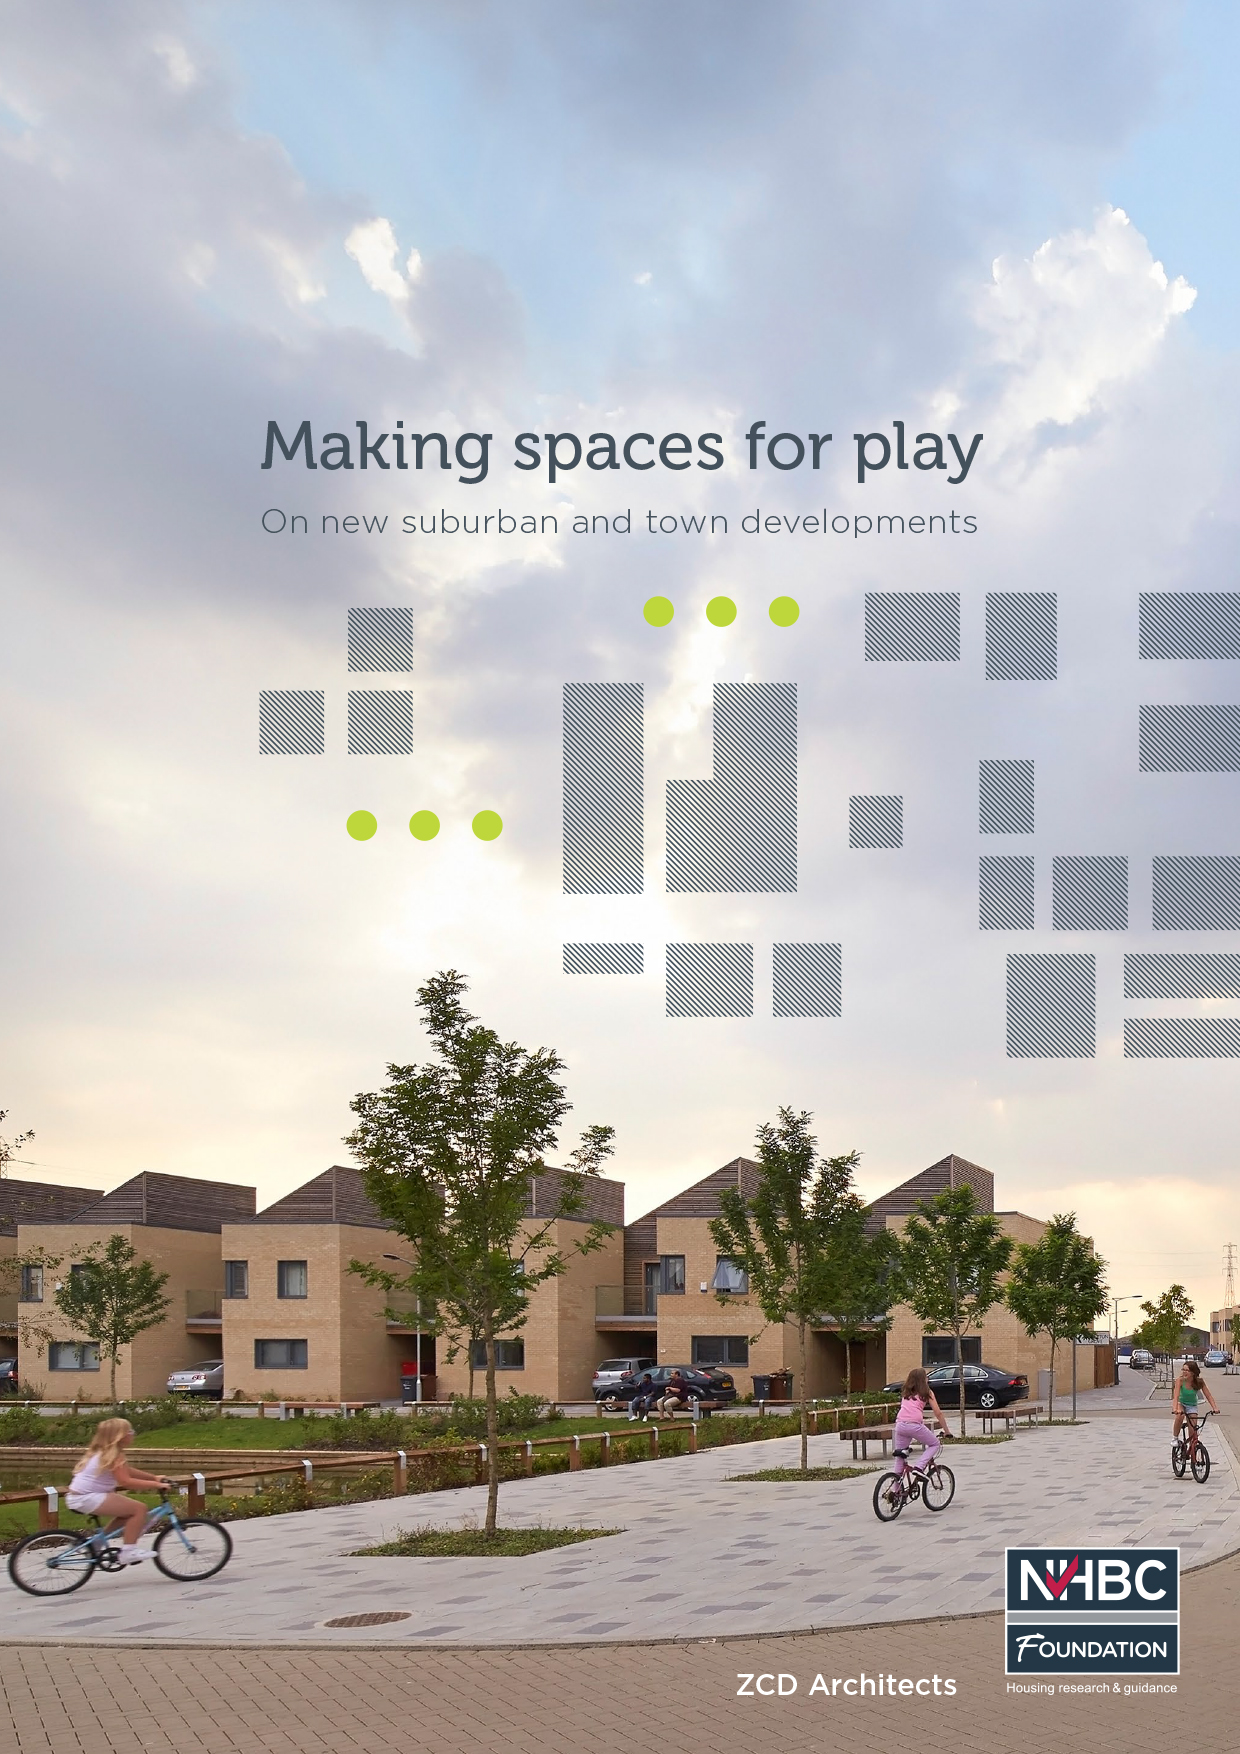 Making spaces for play: on new suburban and town developments